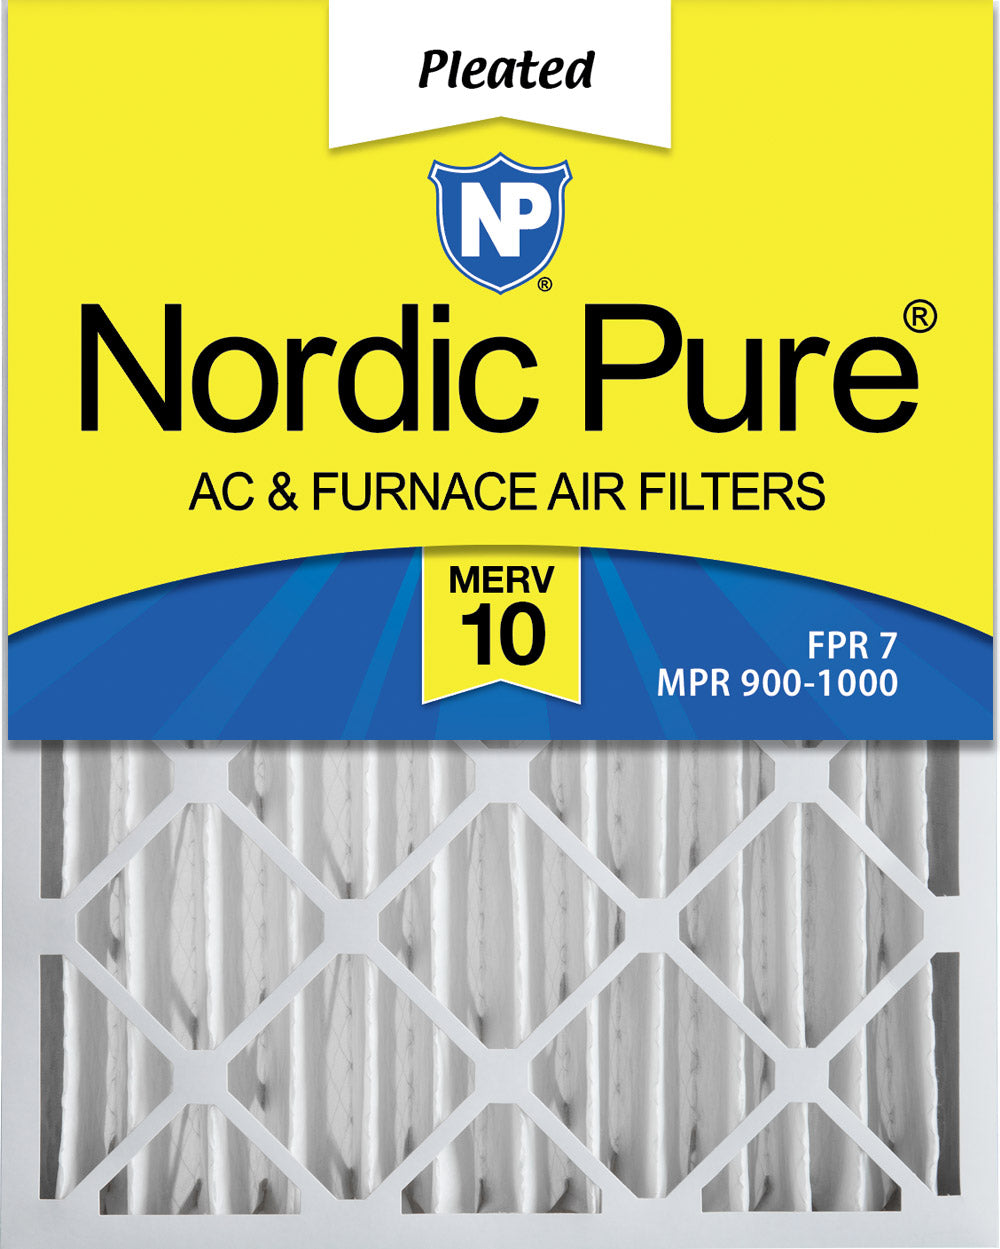 20x25x4 (3 5/8) Pleated MERV 10 Air Filters 1 Pack